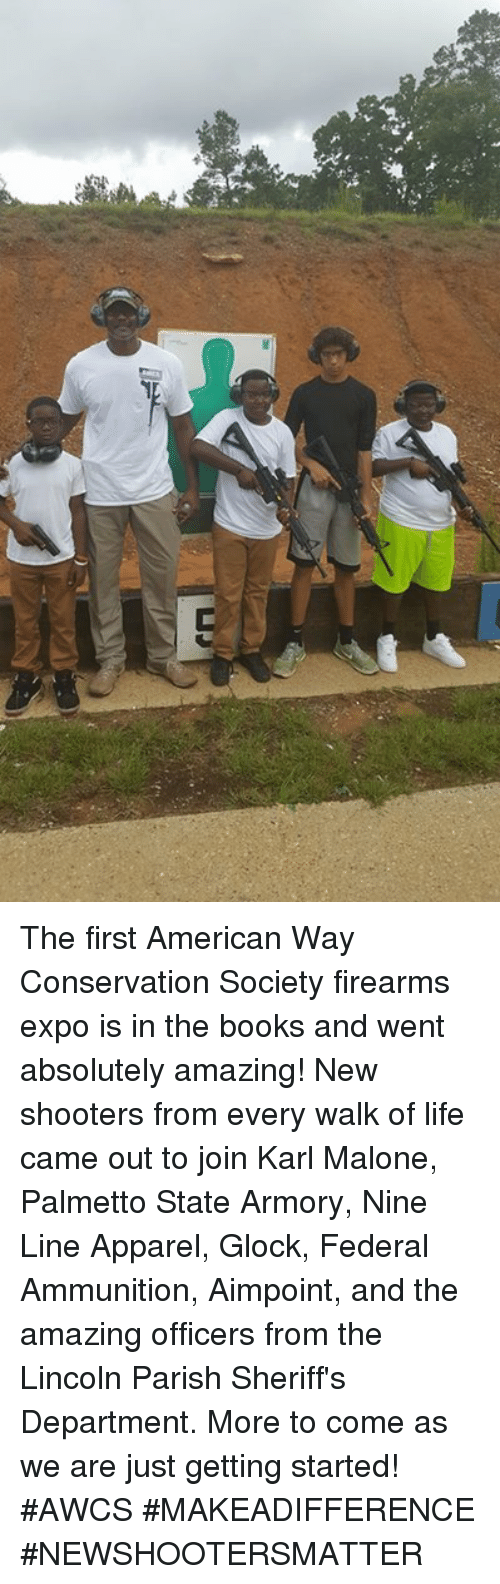 just getting started: The first American Way Conservation Society firearms expo is in the books and went absolutely amazing!  New shooters from every walk of life came out to join Karl Malone, Palmetto State Armory, Nine Line Apparel, Glock, Federal Ammunition, Aimpoint, and the amazing officers from the Lincoln Parish Sheriff's Department.  More to come as we are just getting started!  #AWCS #MAKEADIFFERENCE #NEWSHOOTERSMATTER